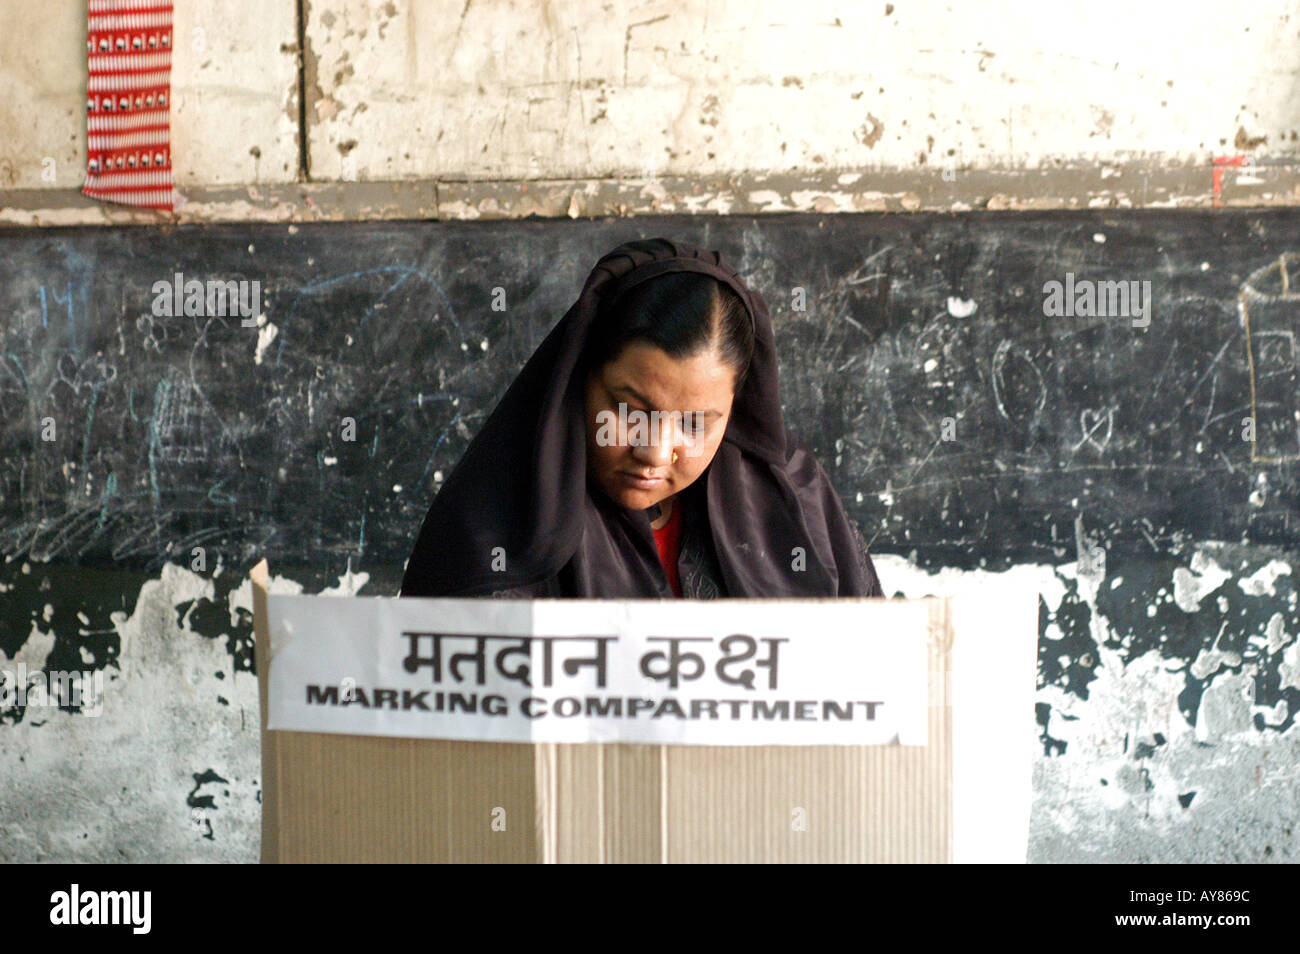 Indian Voting Polling Booth Stockfotos & Indian Voting Polling Booth ...